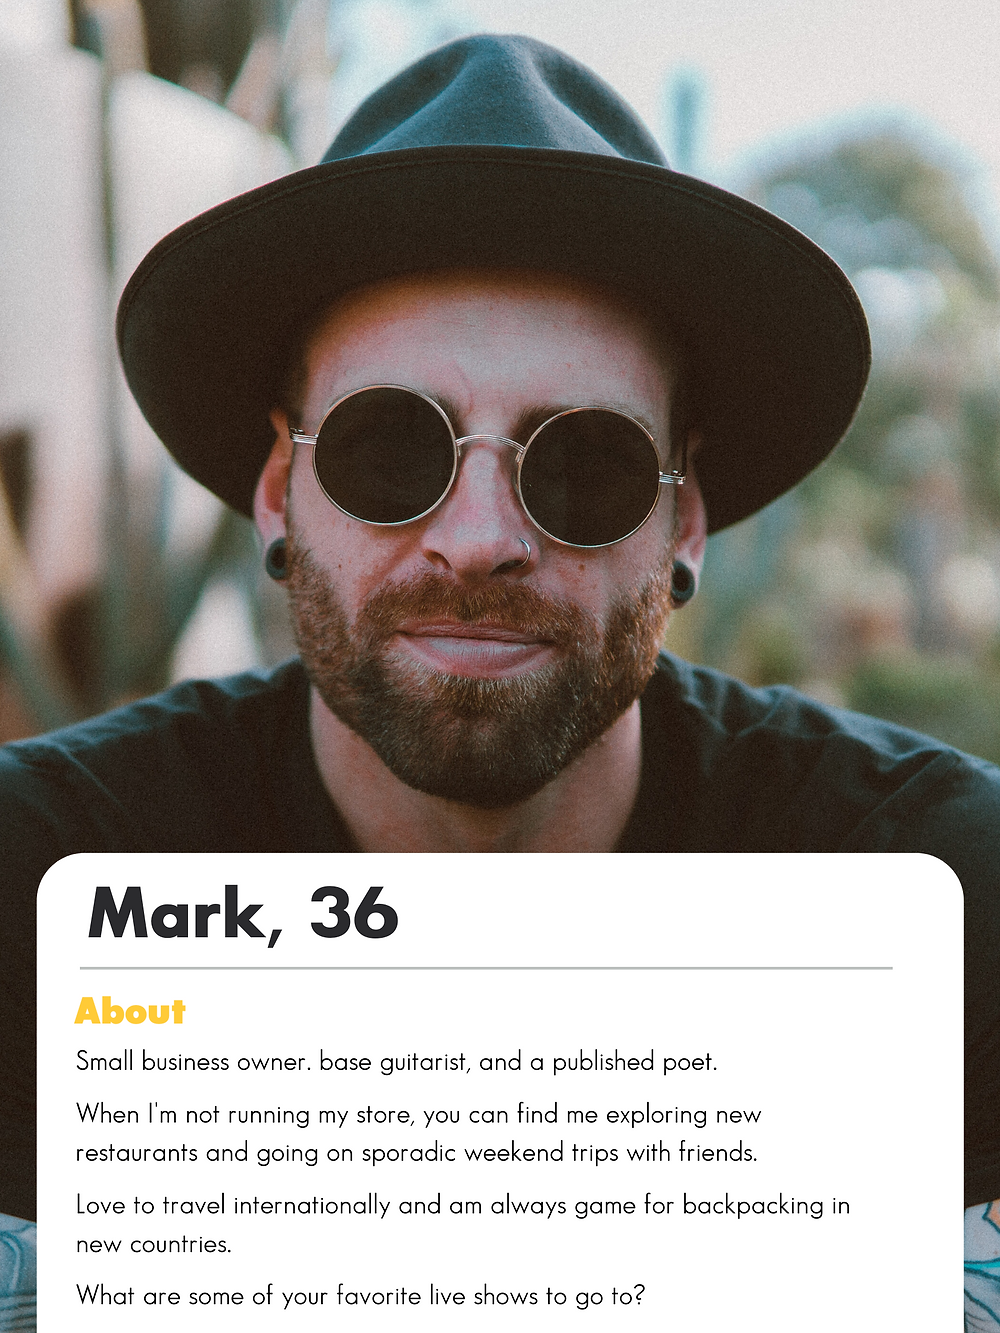 """Good Bumble Bios and Examples. Mark bio example. """"Small business owner. base guitarist, and a published poet.   When I'm not running my store, you can find me exploring new restaurants and going on sporadic weekend trips with friends.   Love to travel internationally and am always game for backpacking in new countries.  What are some of your favorite live shows to go to?"""""""